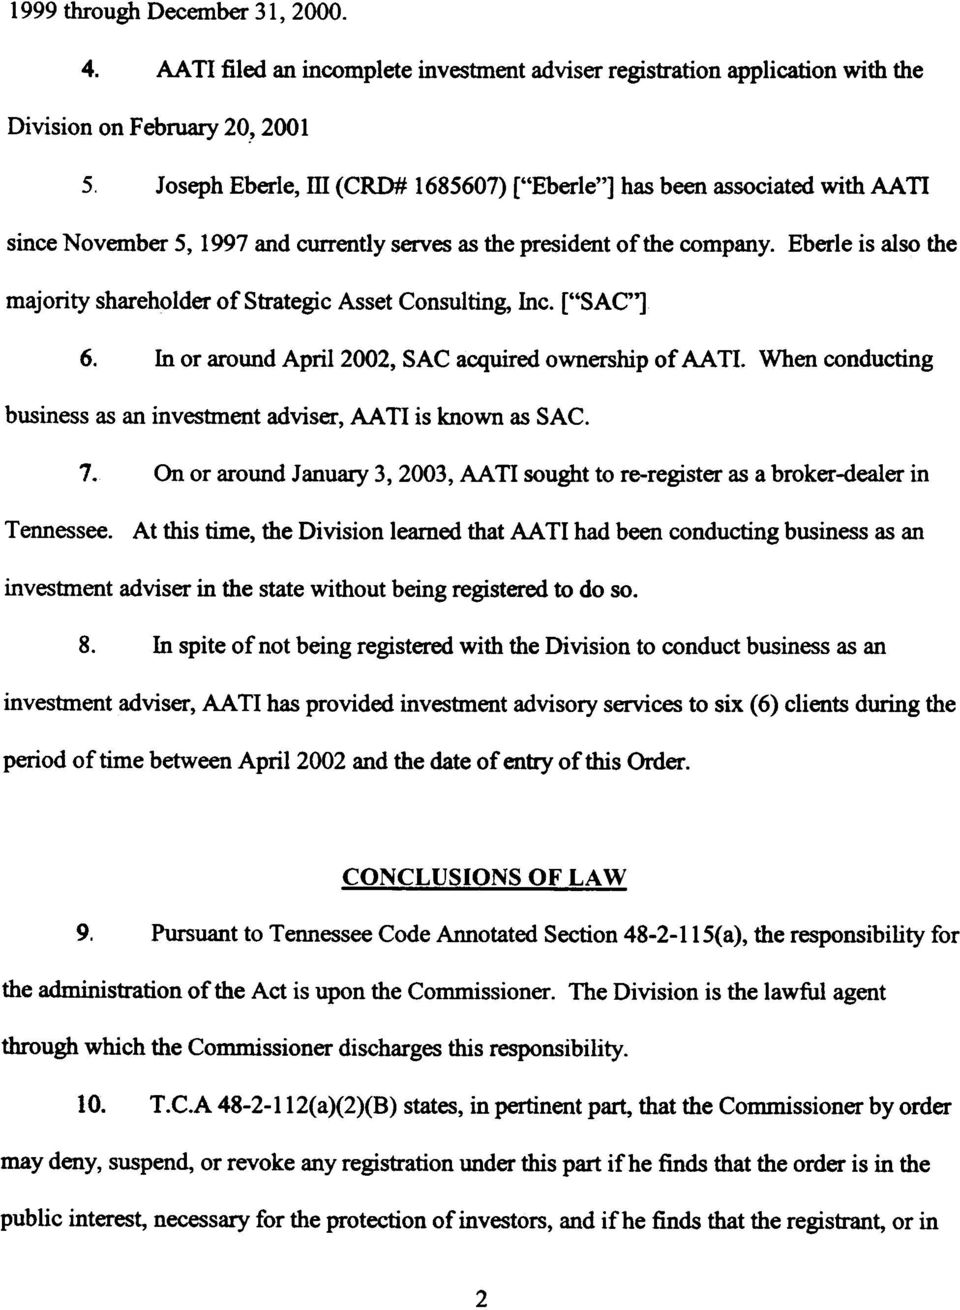 "Eberle is also the majority shareholder of Strategic Asset Consulting, Inc. [""SAC""] 6. In or around April 2002, SAC acquired ownership of AA TI."